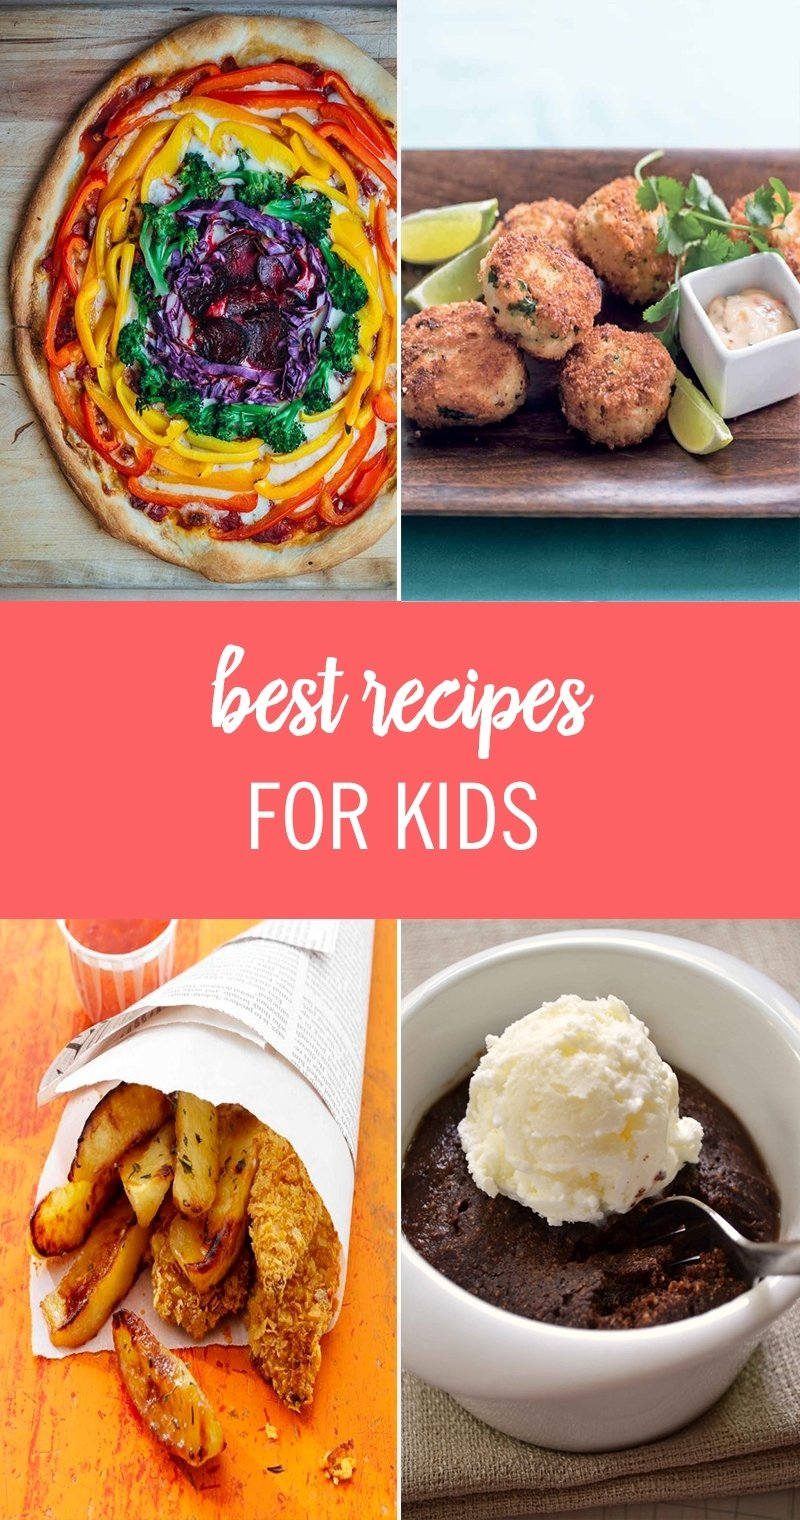 10 Fabulous Easy Dinner Ideas For Picky Eaters cooking for kids 50 best recipes for kids and picky eaters 12 2021